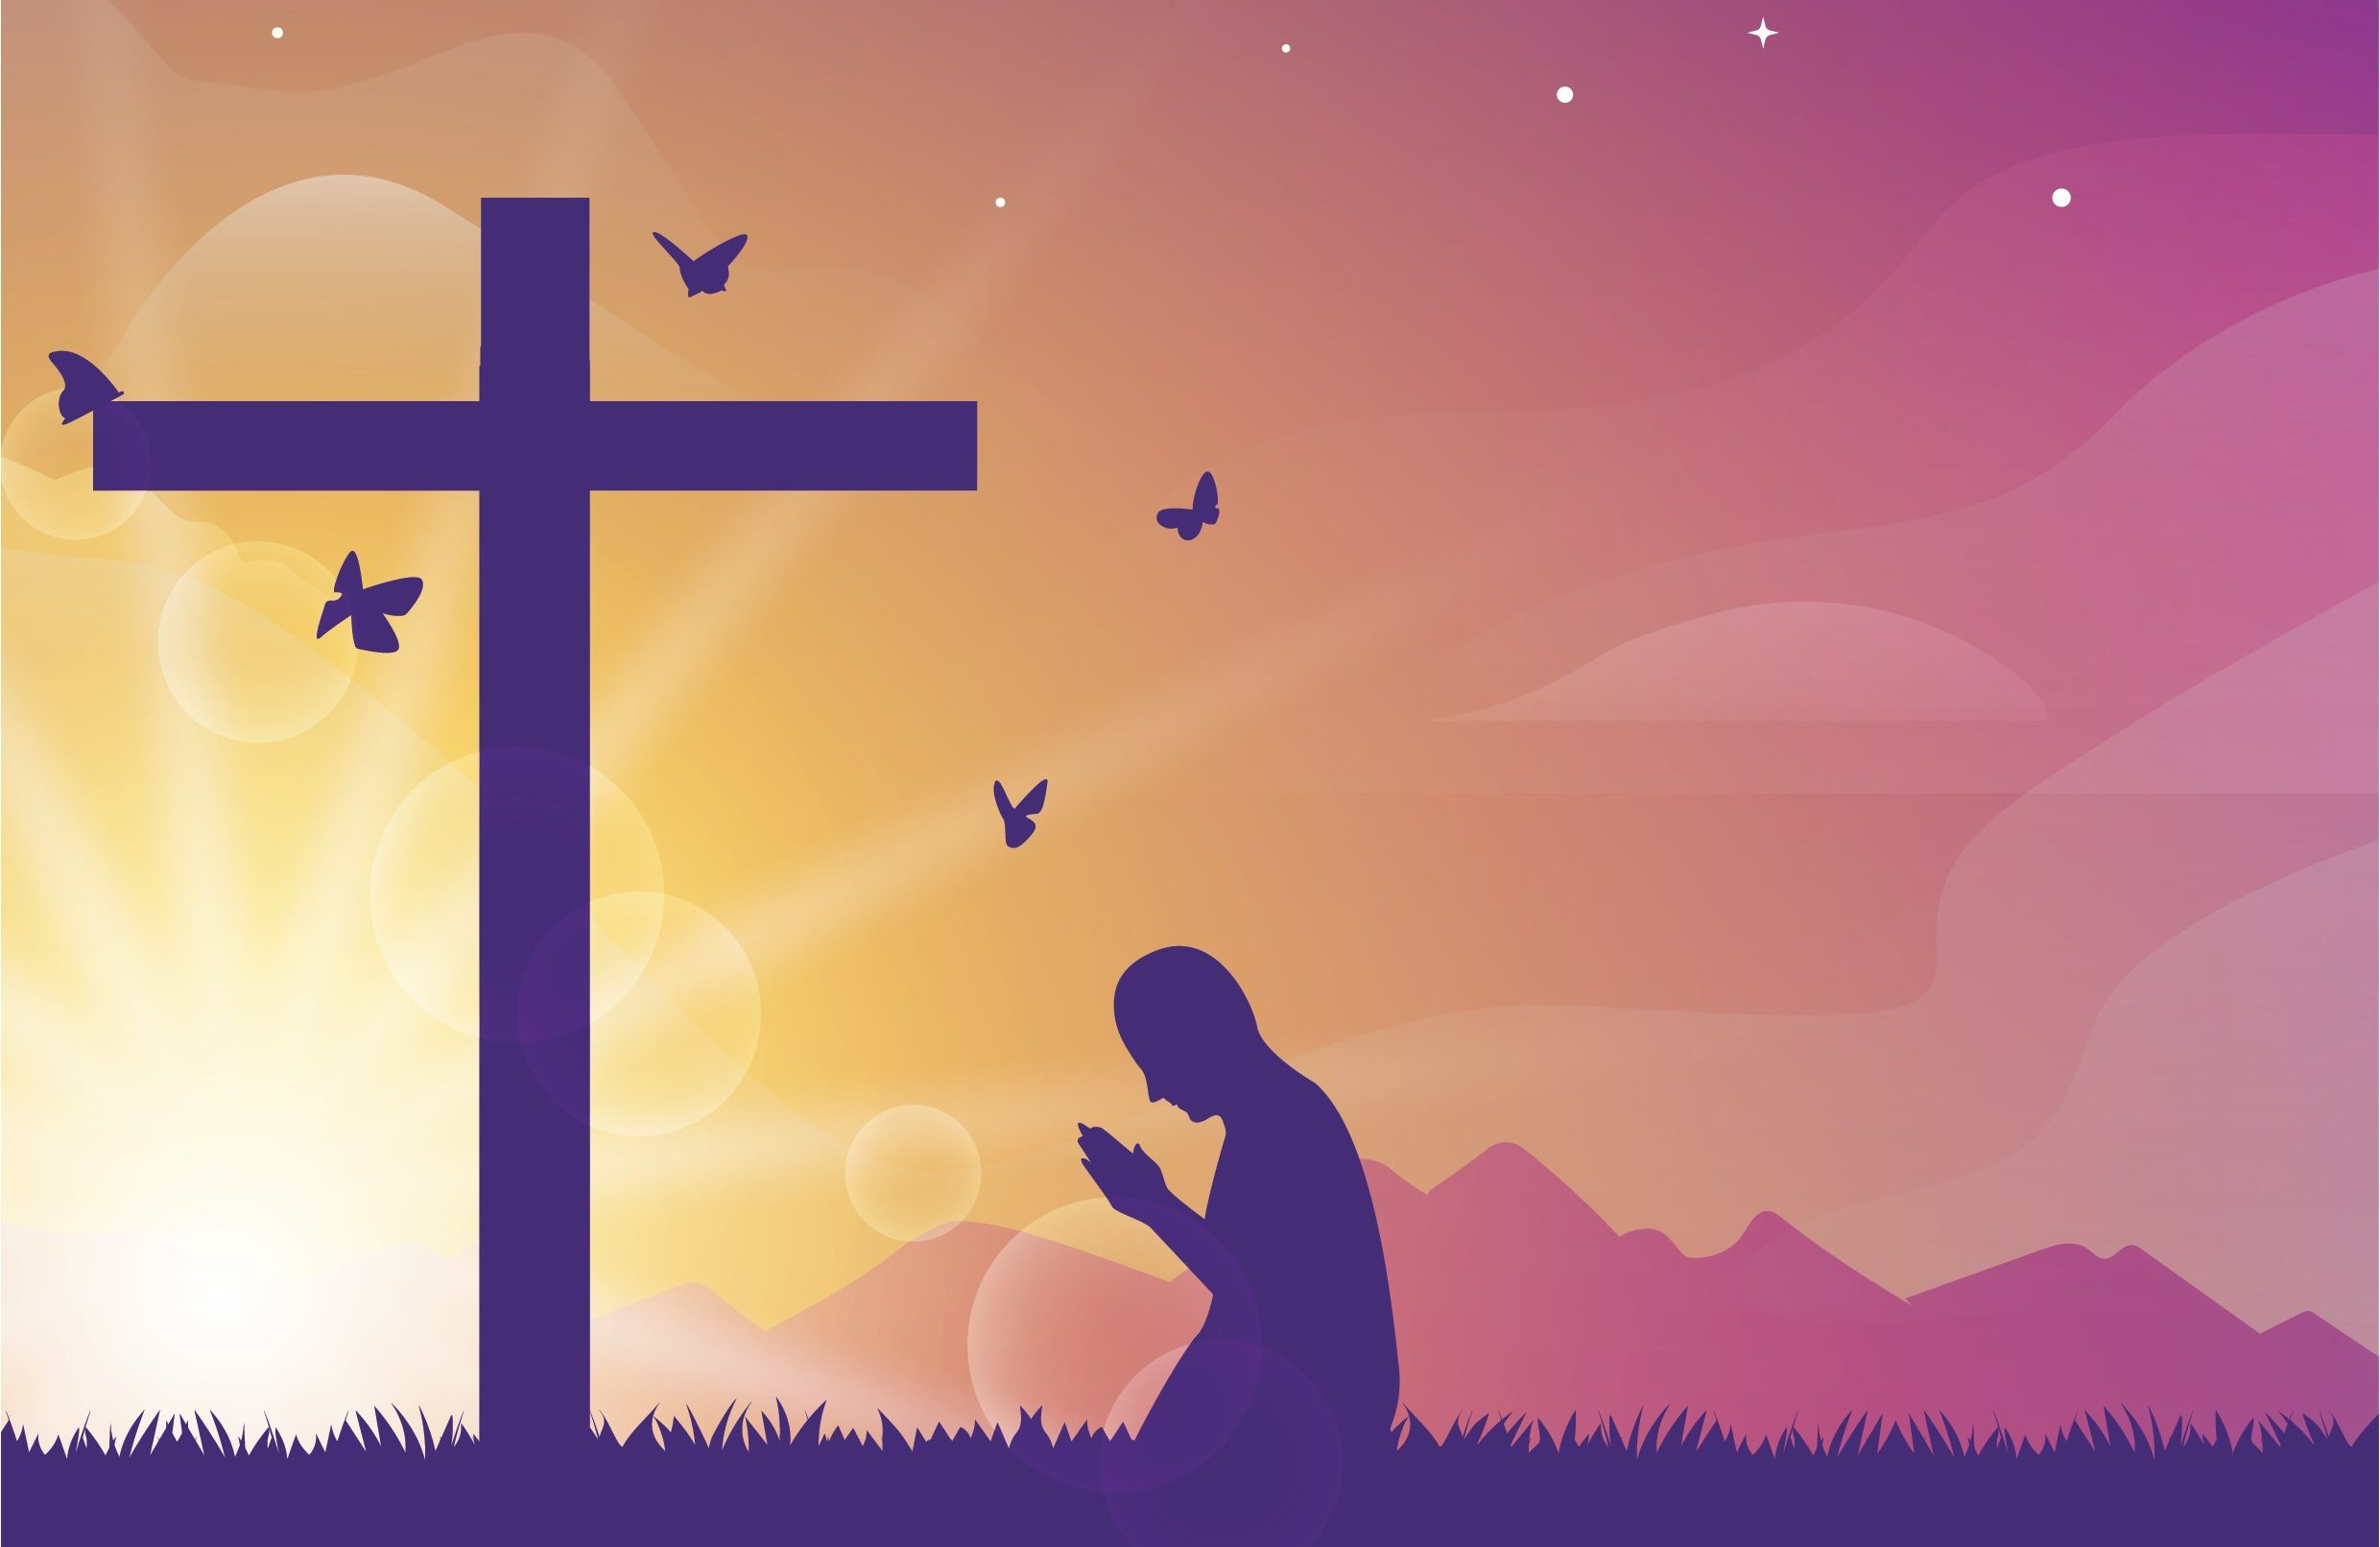 Man by a cross kneeling down and praying